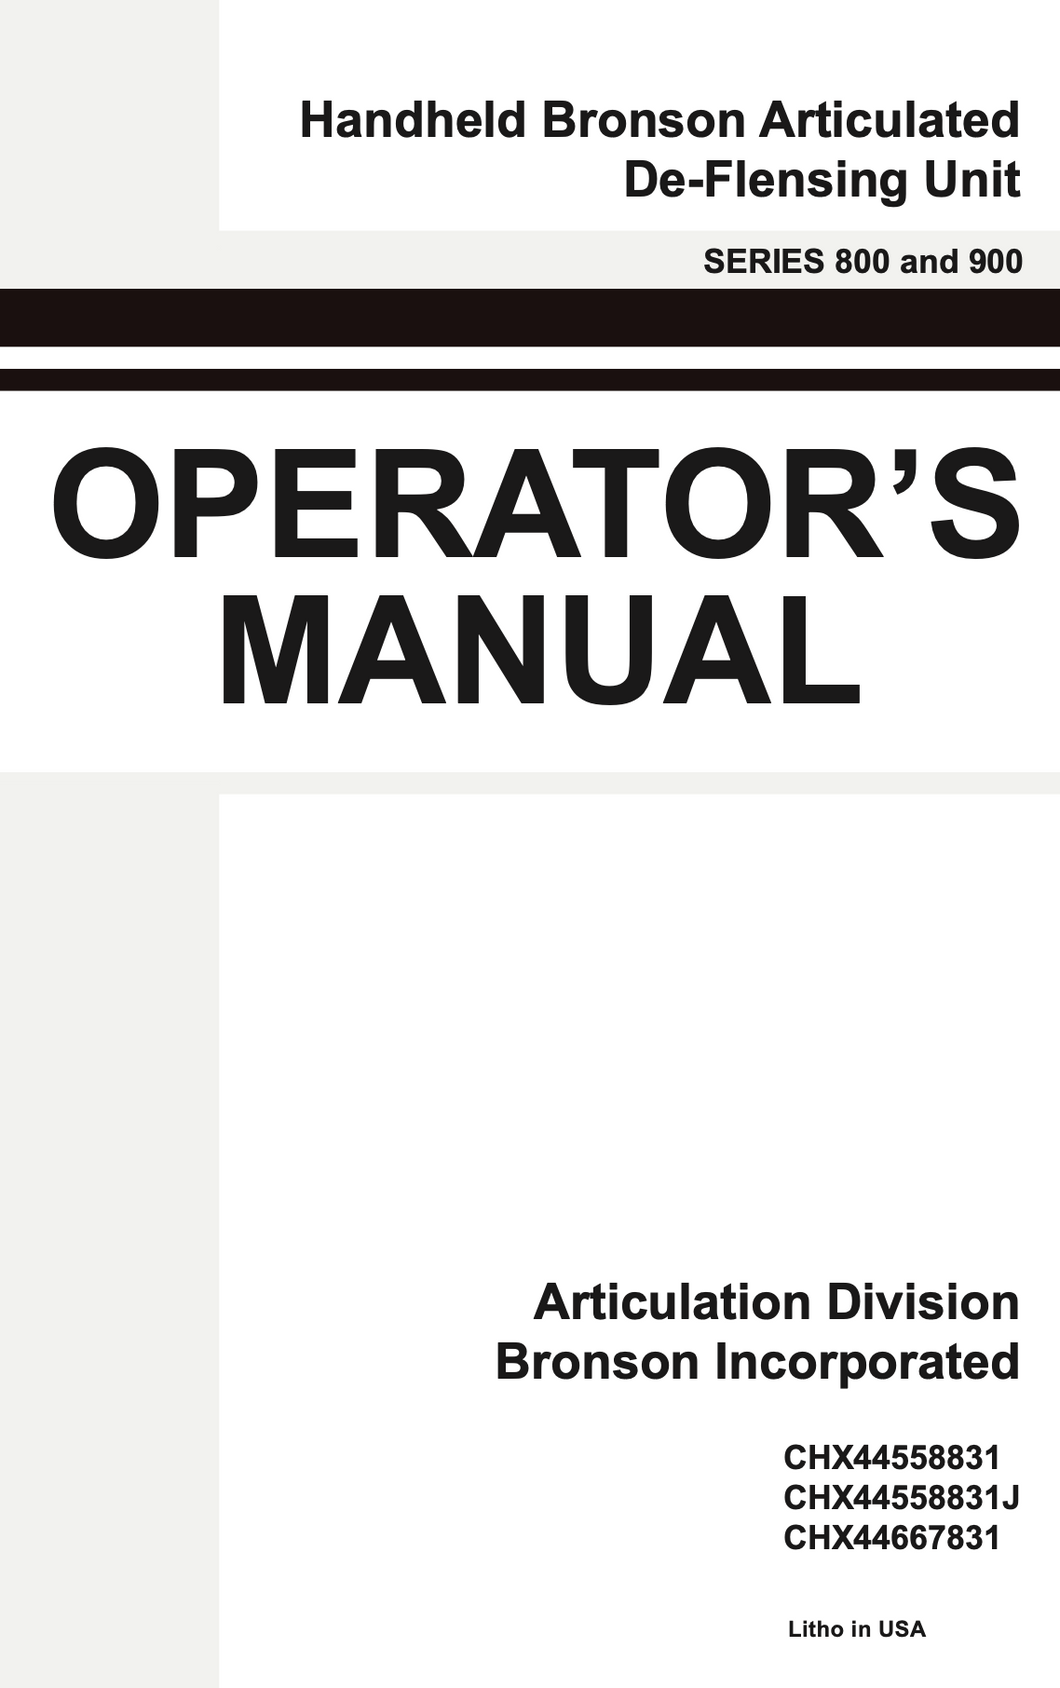 Operator's Manual for the Handheld Bronson Articulated De-Flensing Unit: A Game